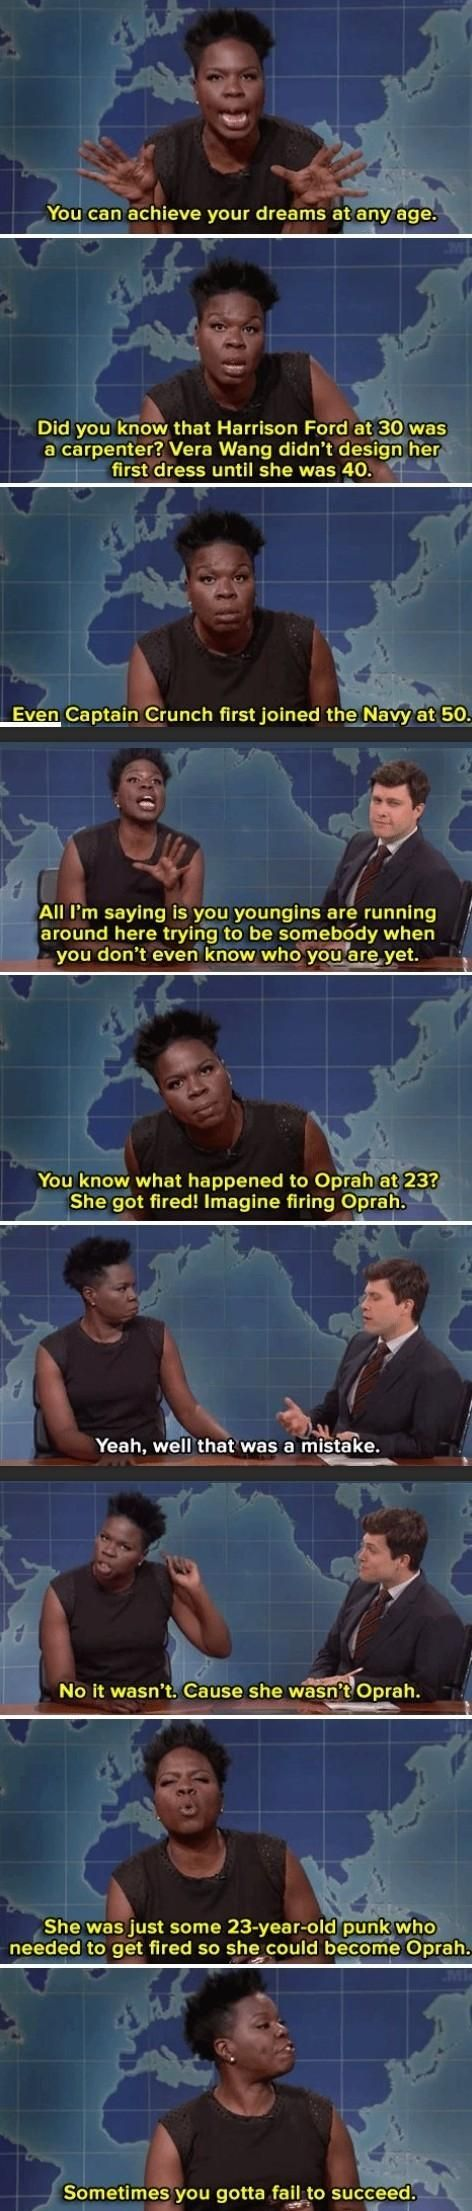 I love Leslie Jones